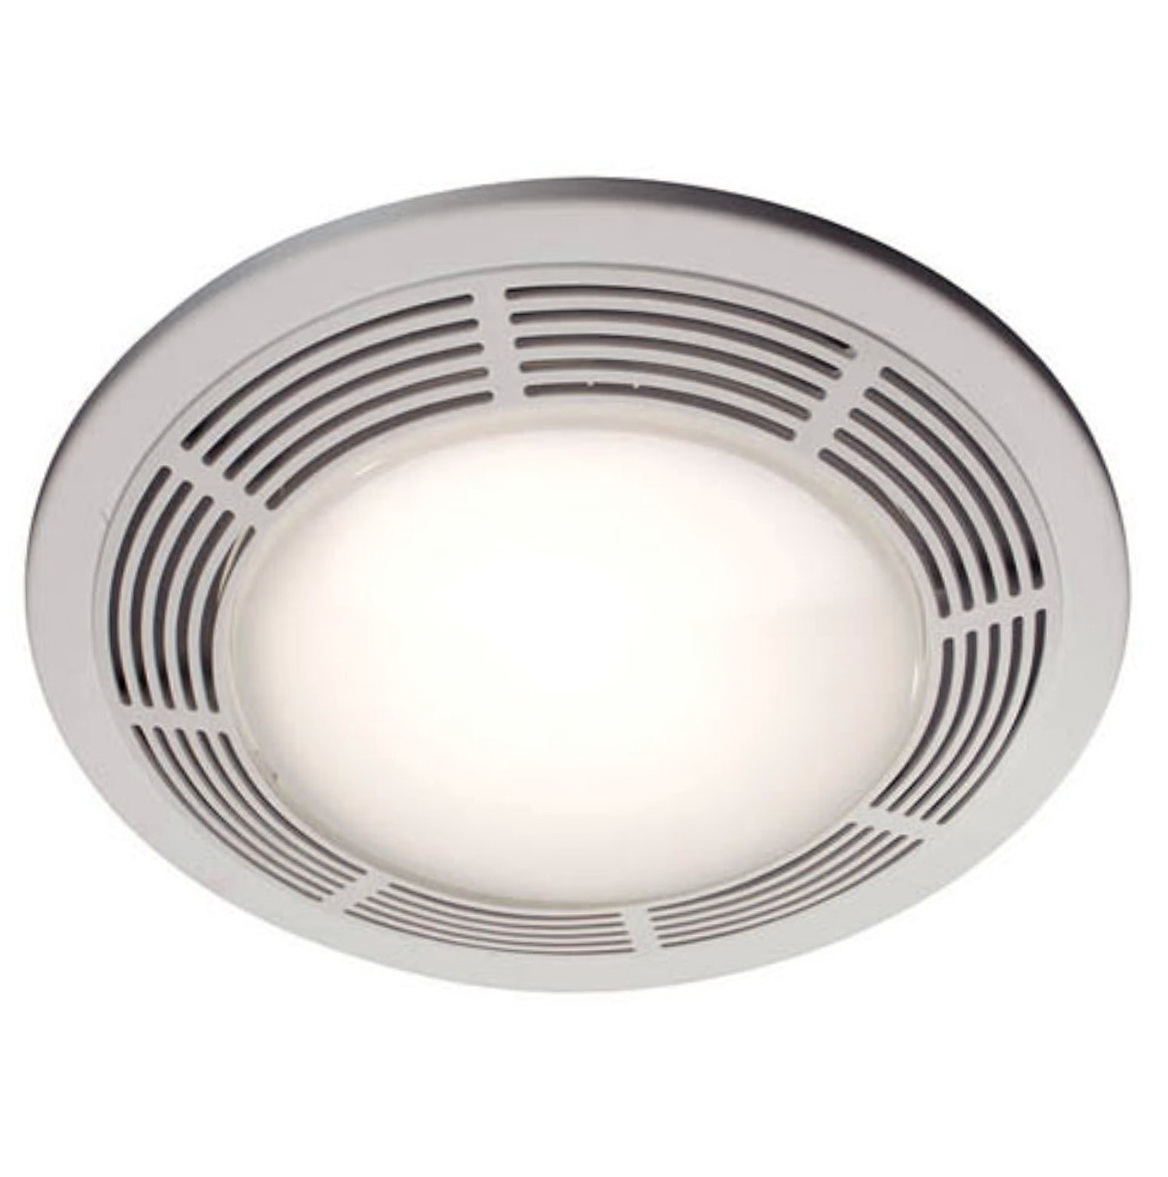 Broan Bathroom Fans With Light